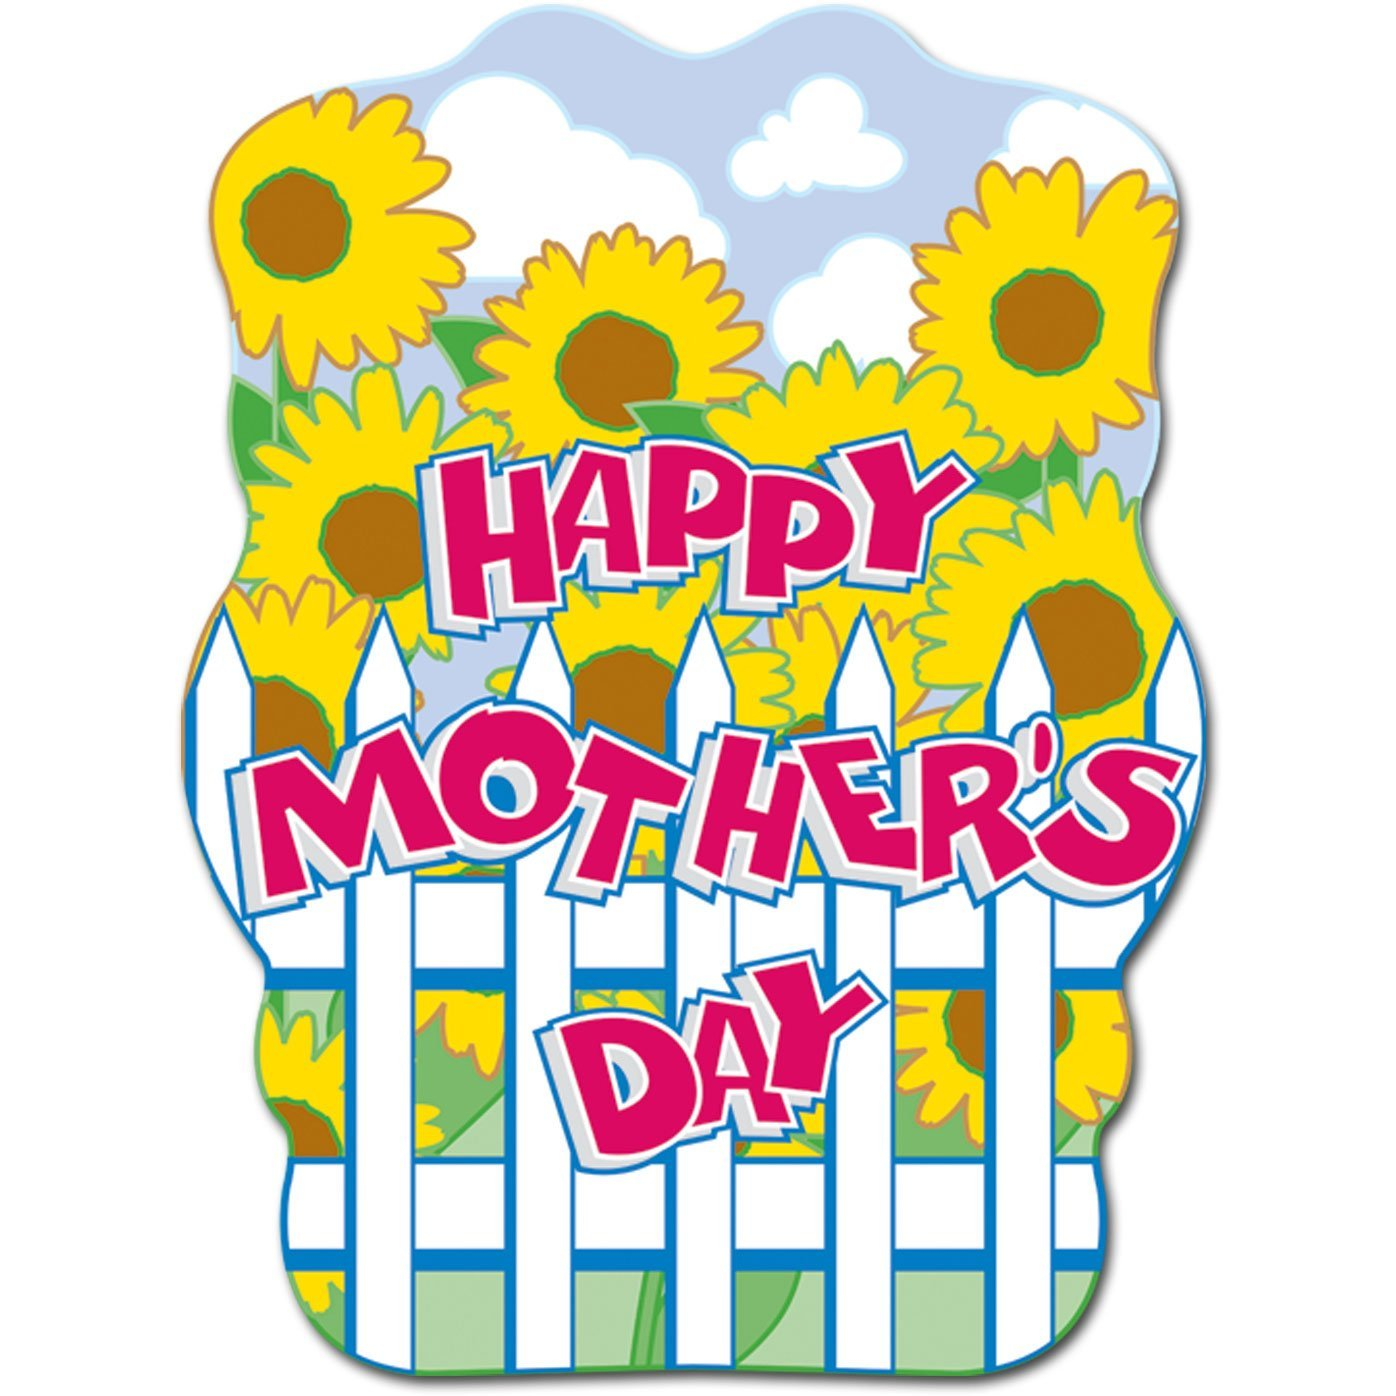 Happy Mother's Day Sign Party Accessory (1 count), 1 Cutout per package By Beistle